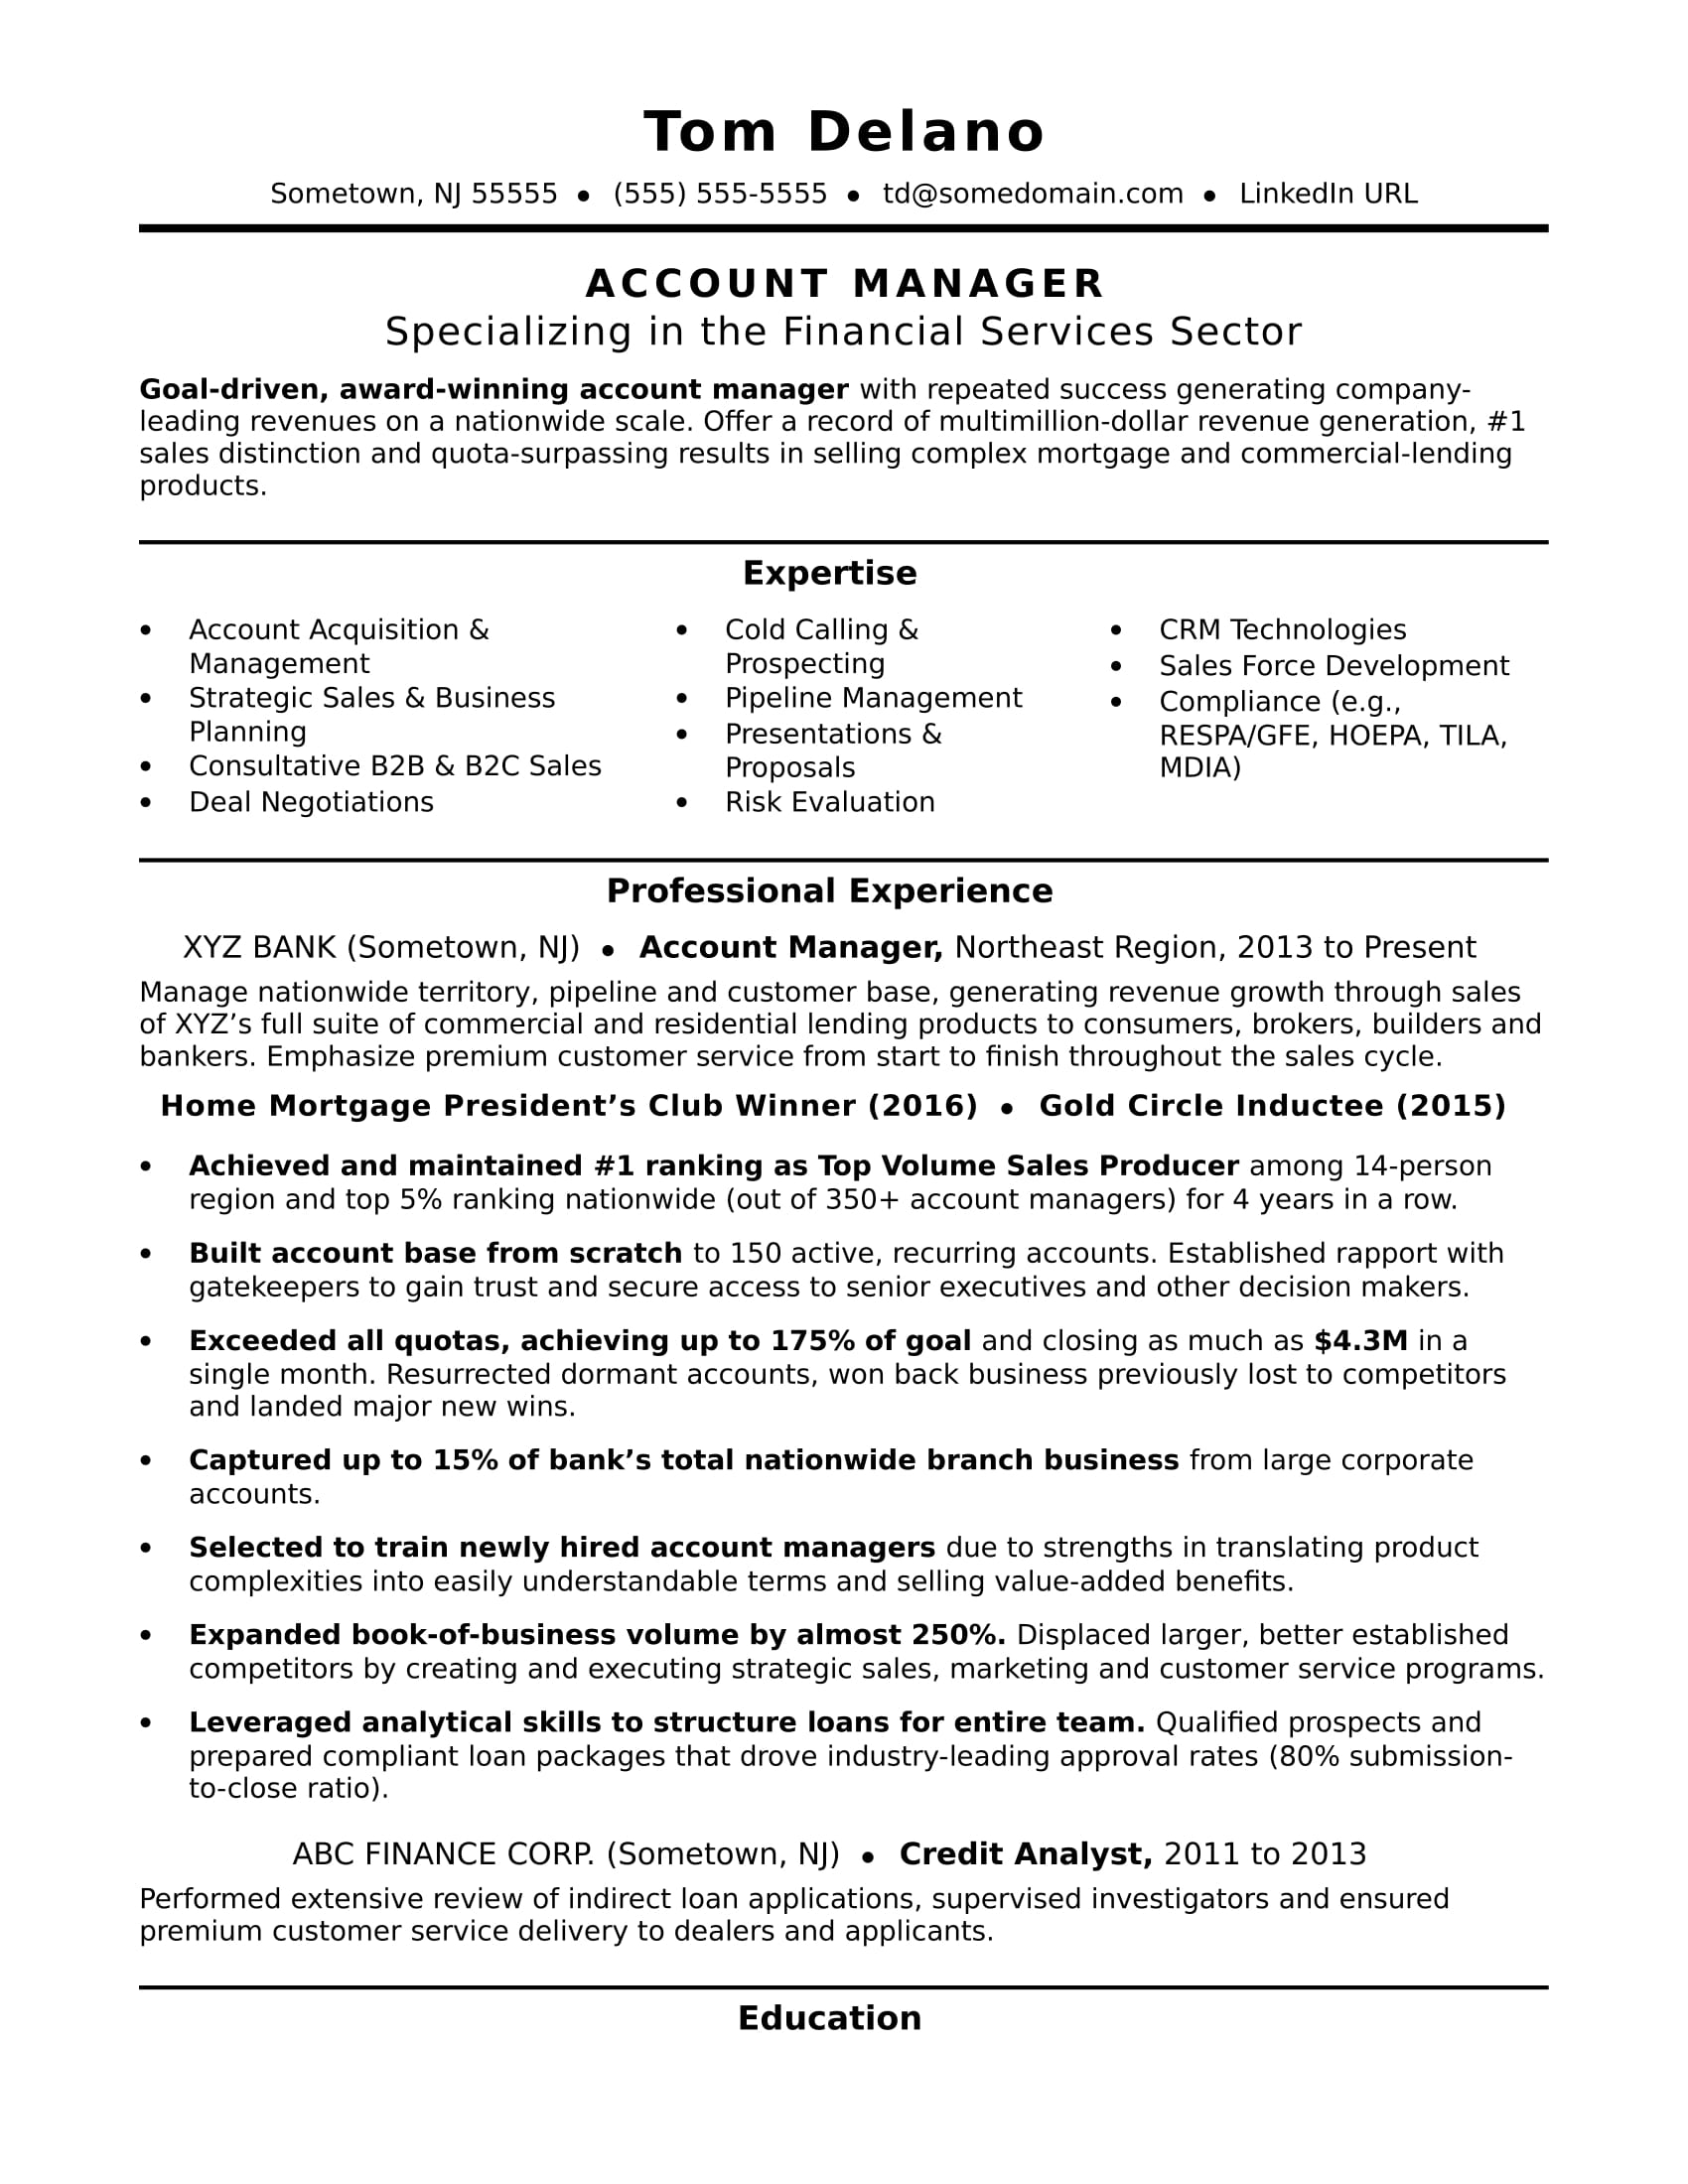 Account Manager Resume Sample  Account Manager Job Description